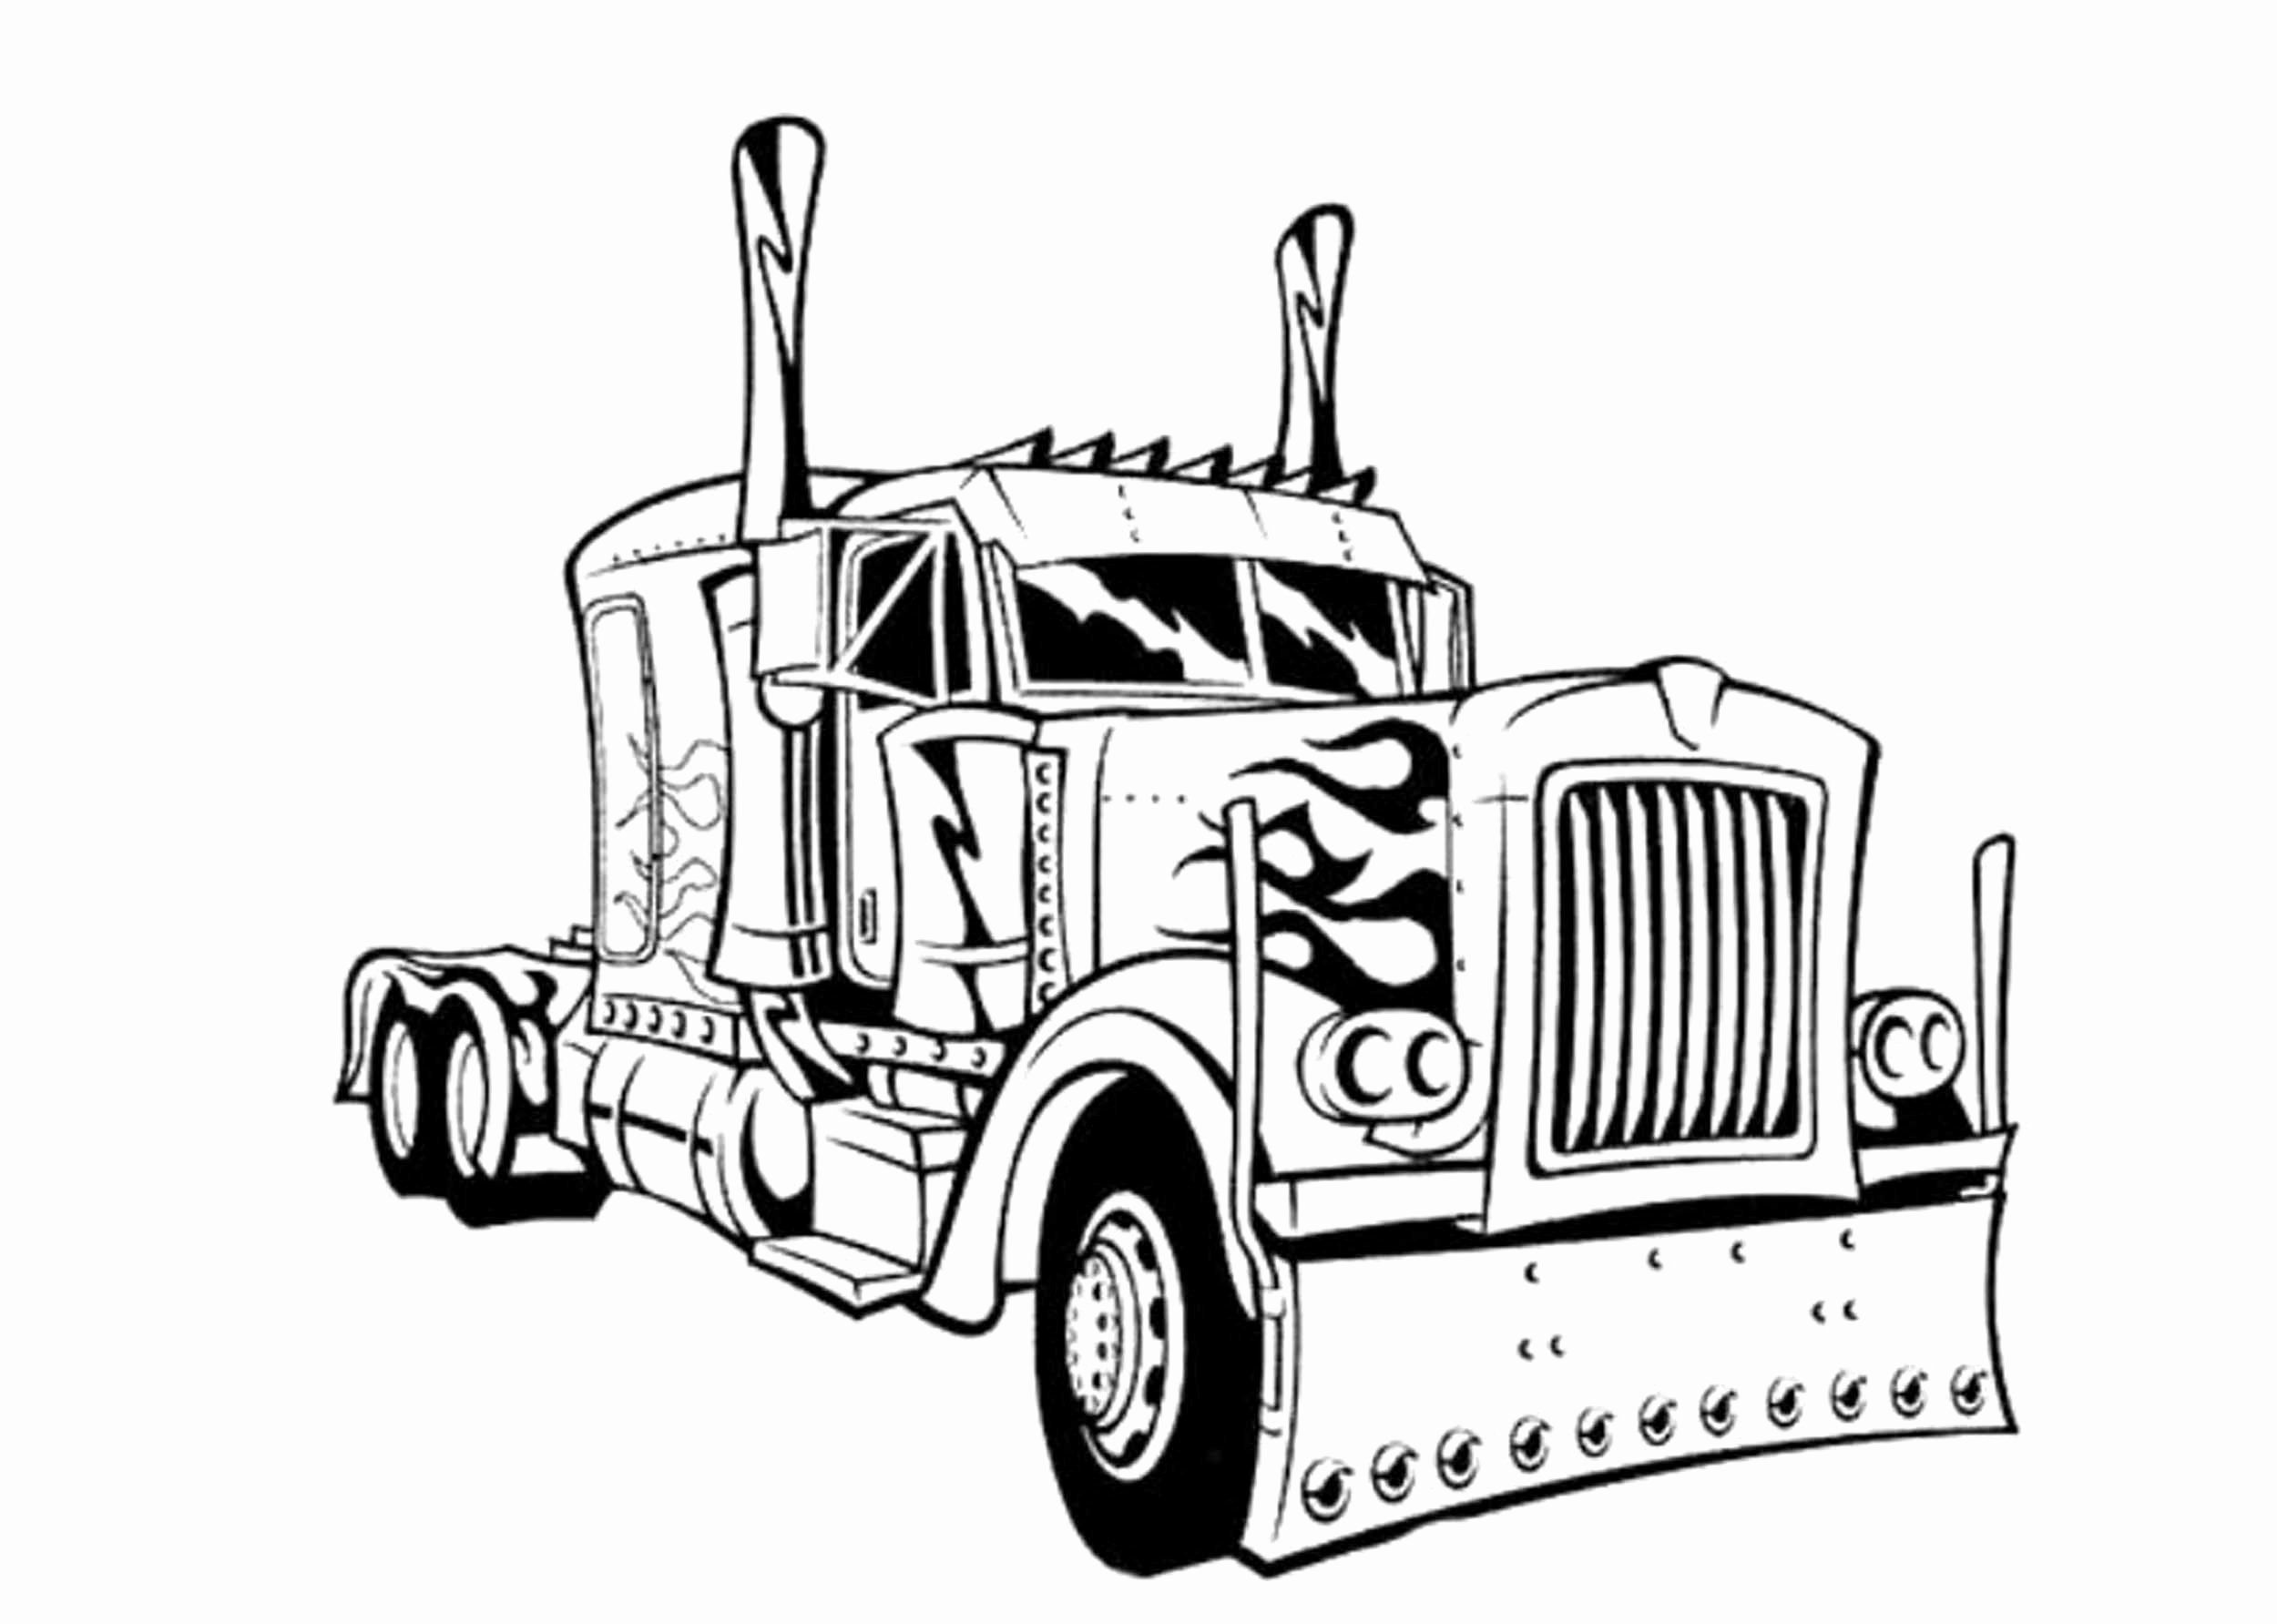 Optimus Prime Coloring Page For Kids Inspirational Transformer Optimus Prime Coloring Pages Colori In 2020 Truck Coloring Pages Optimus Prime Truck Cars Coloring Pages